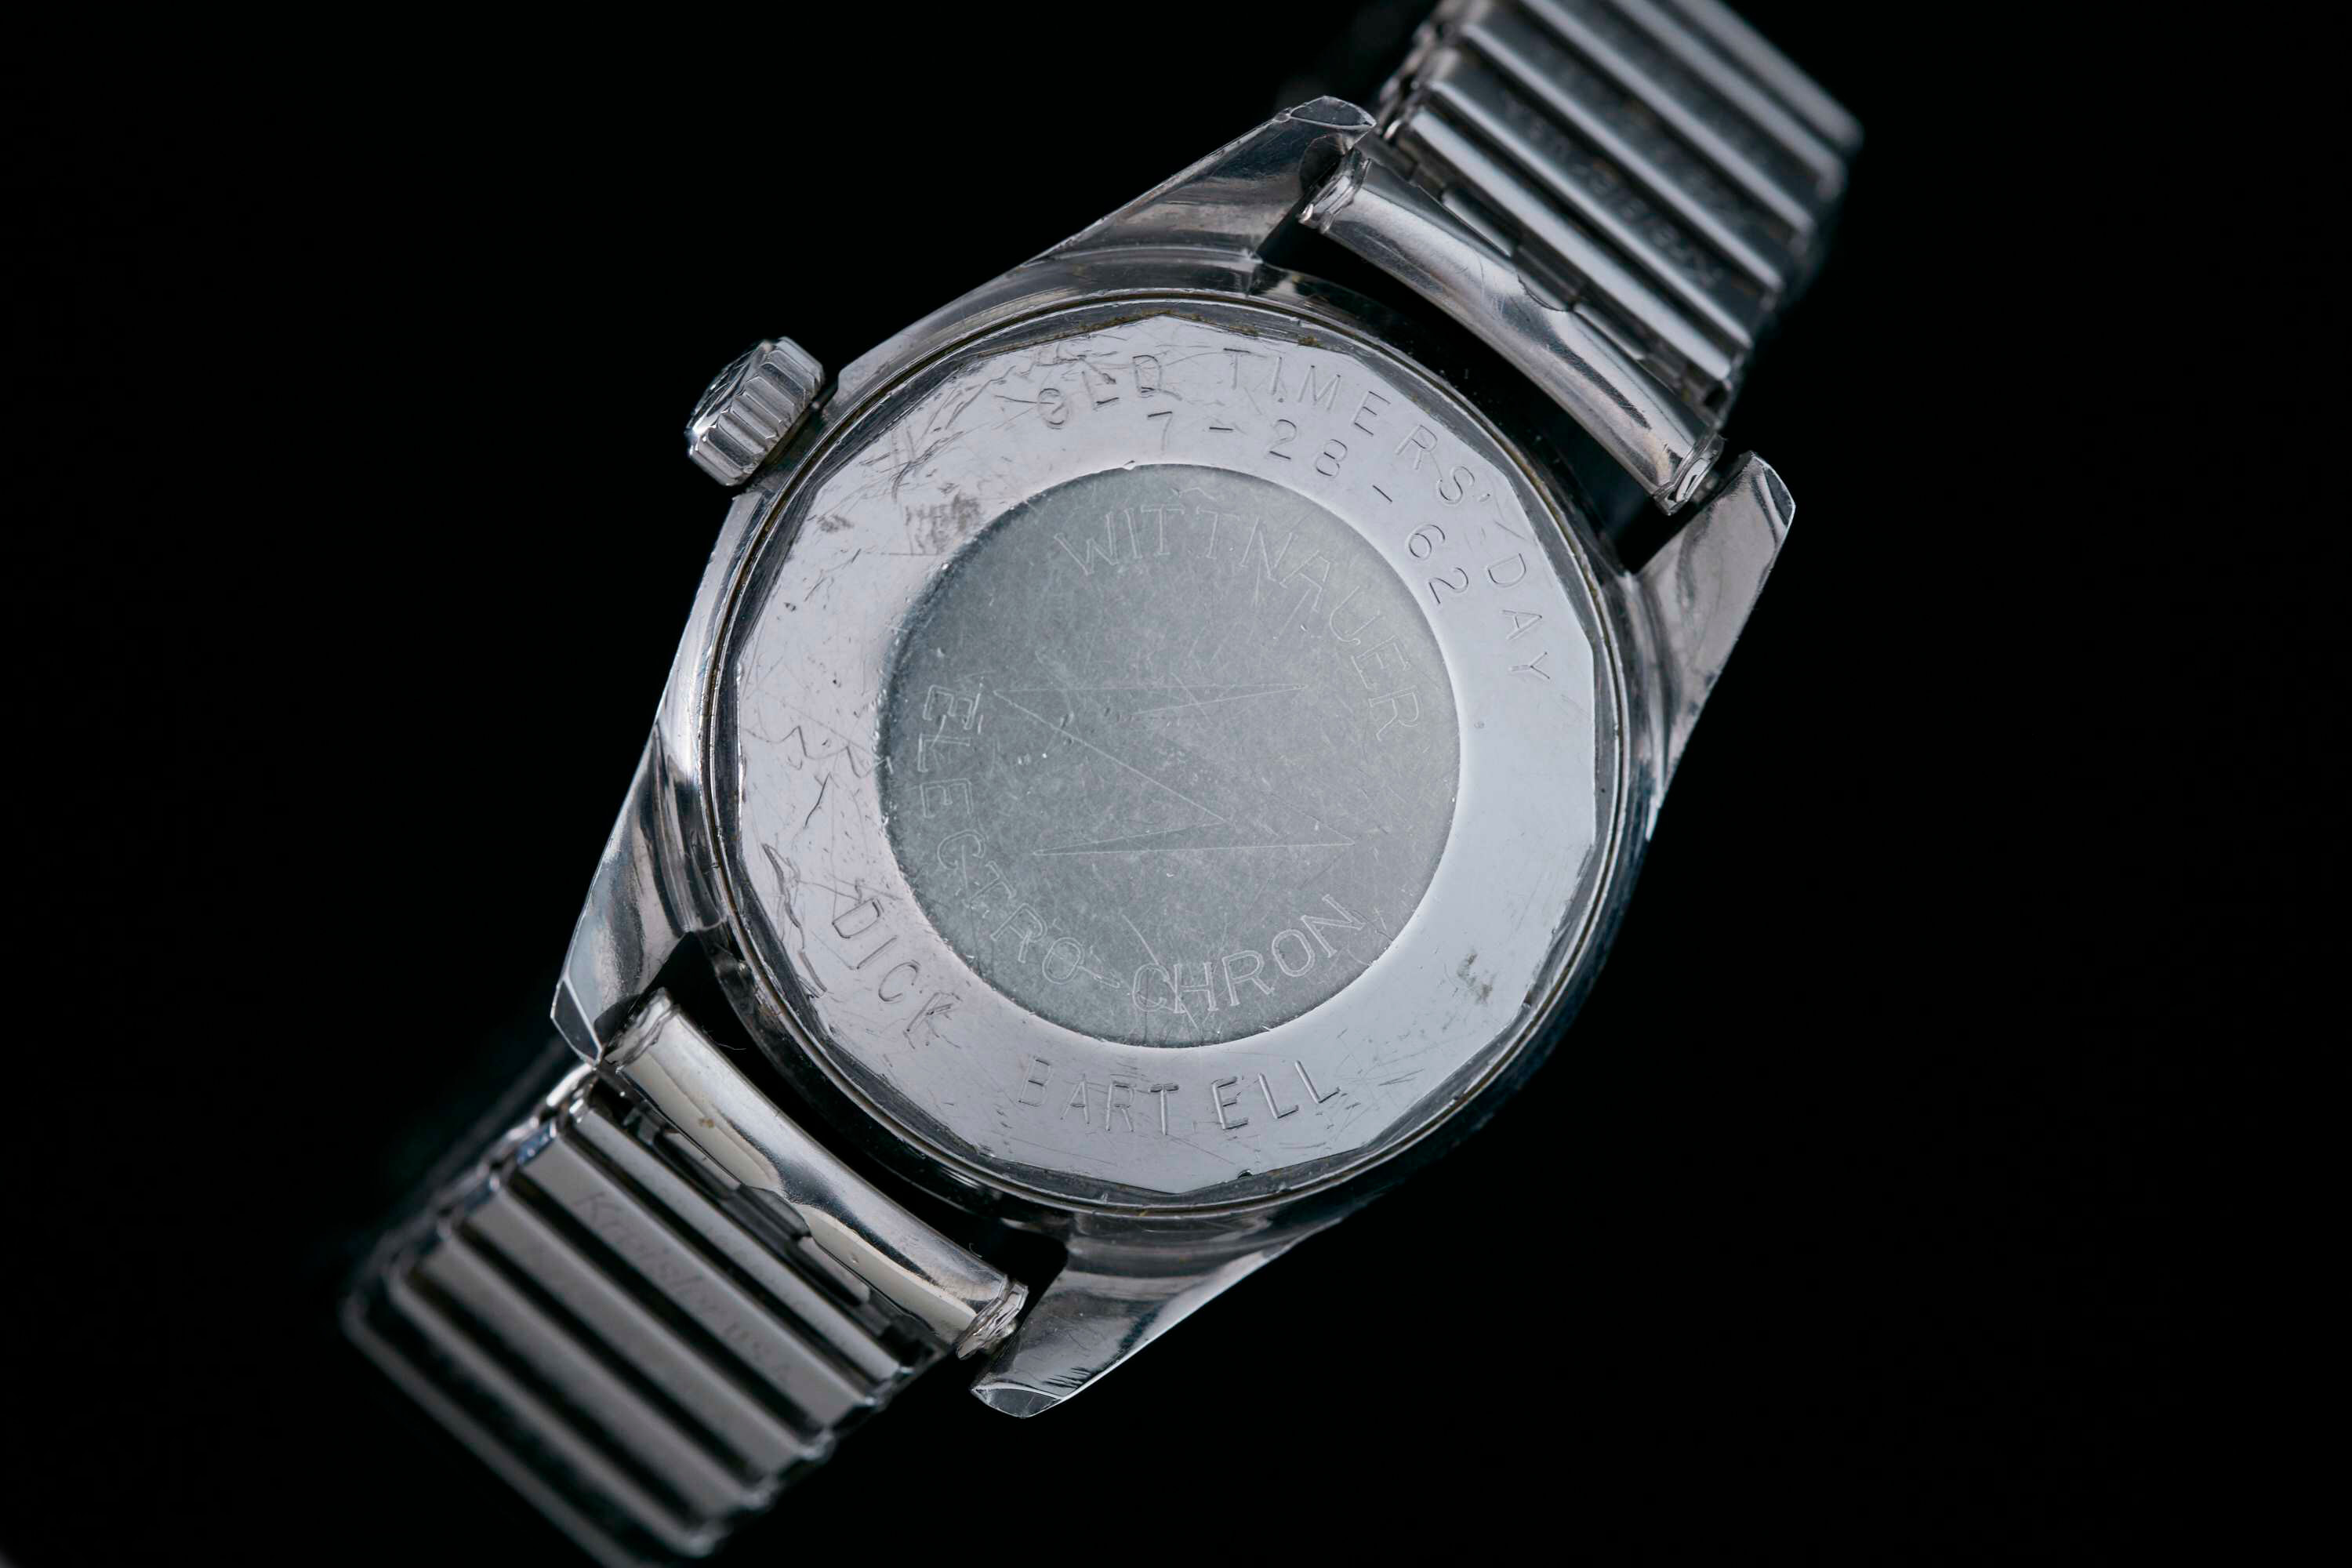 The case back of the watch has Bartell's name on it. Former Mayor Rudy Giuliani donated the piece for auction